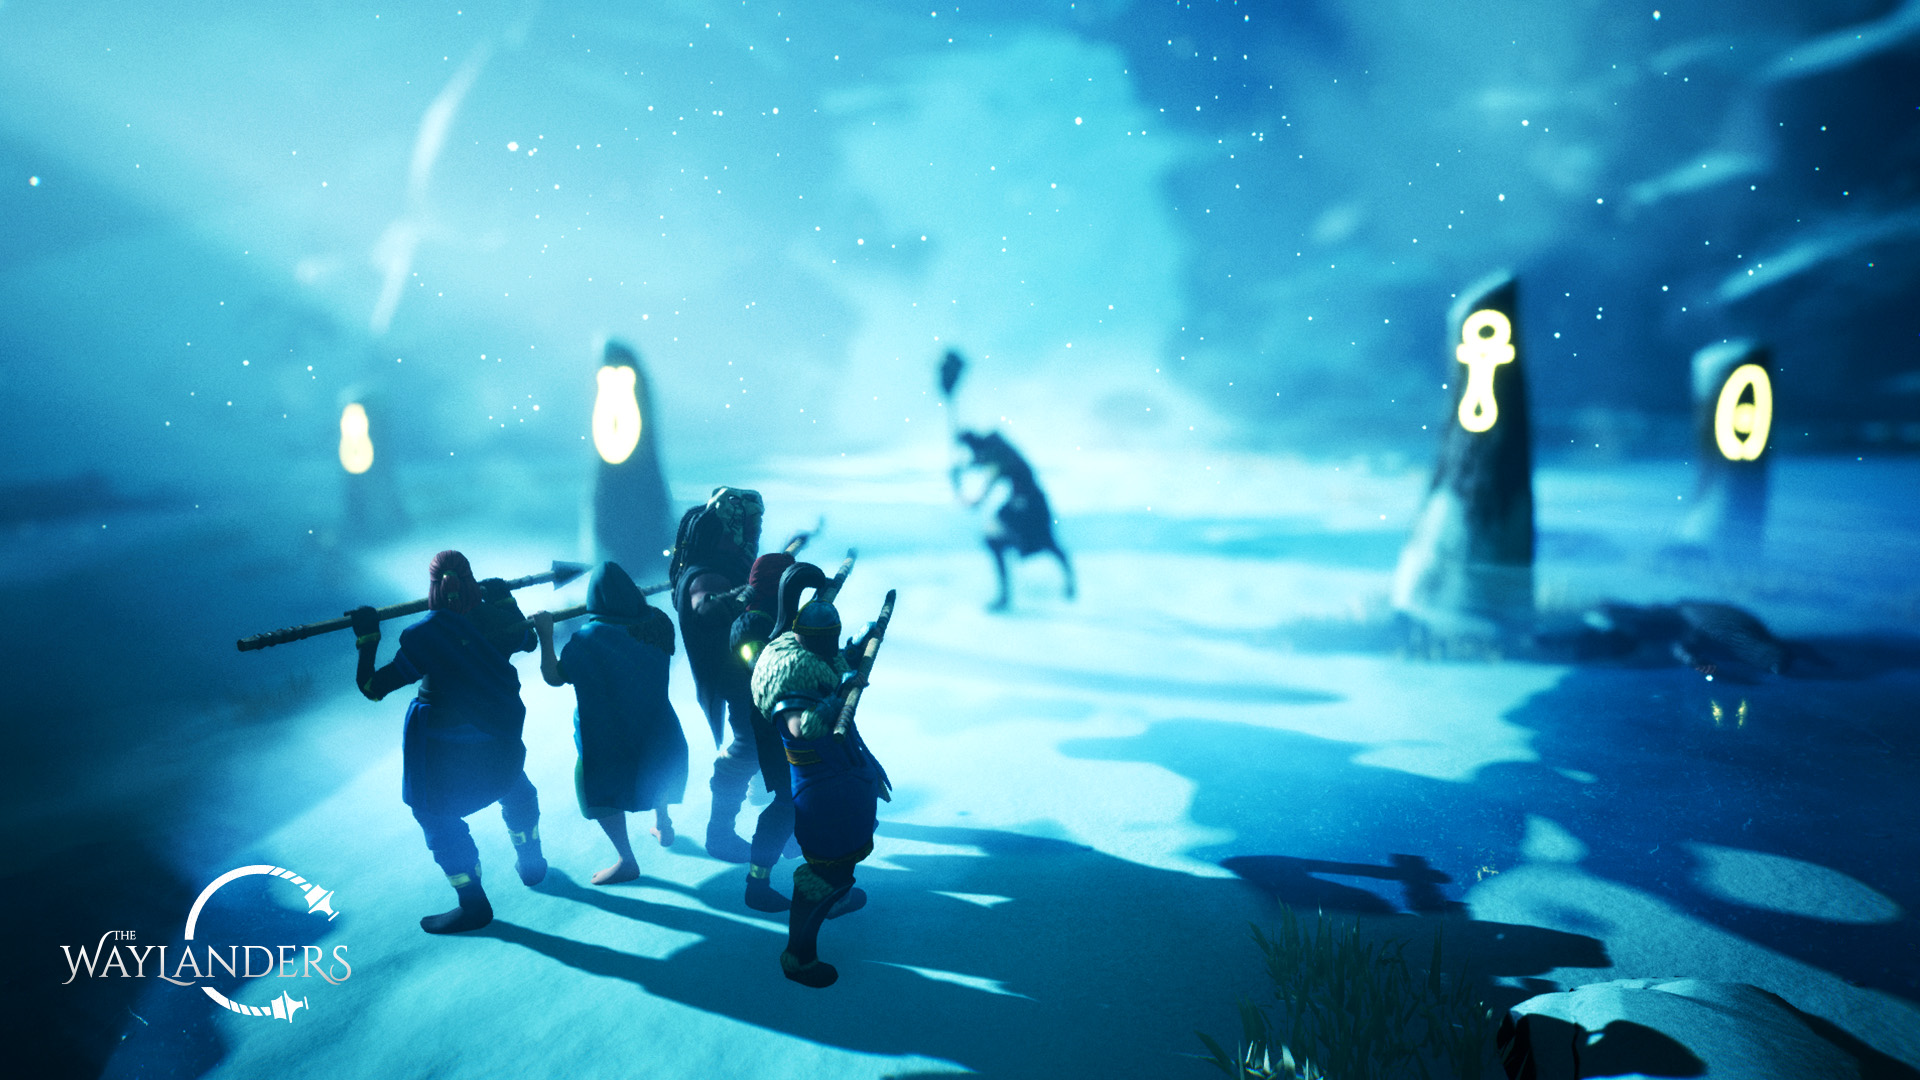 First look at The Waylanders, a time travel RPG inspired by the likes of Dragon Age: Origins